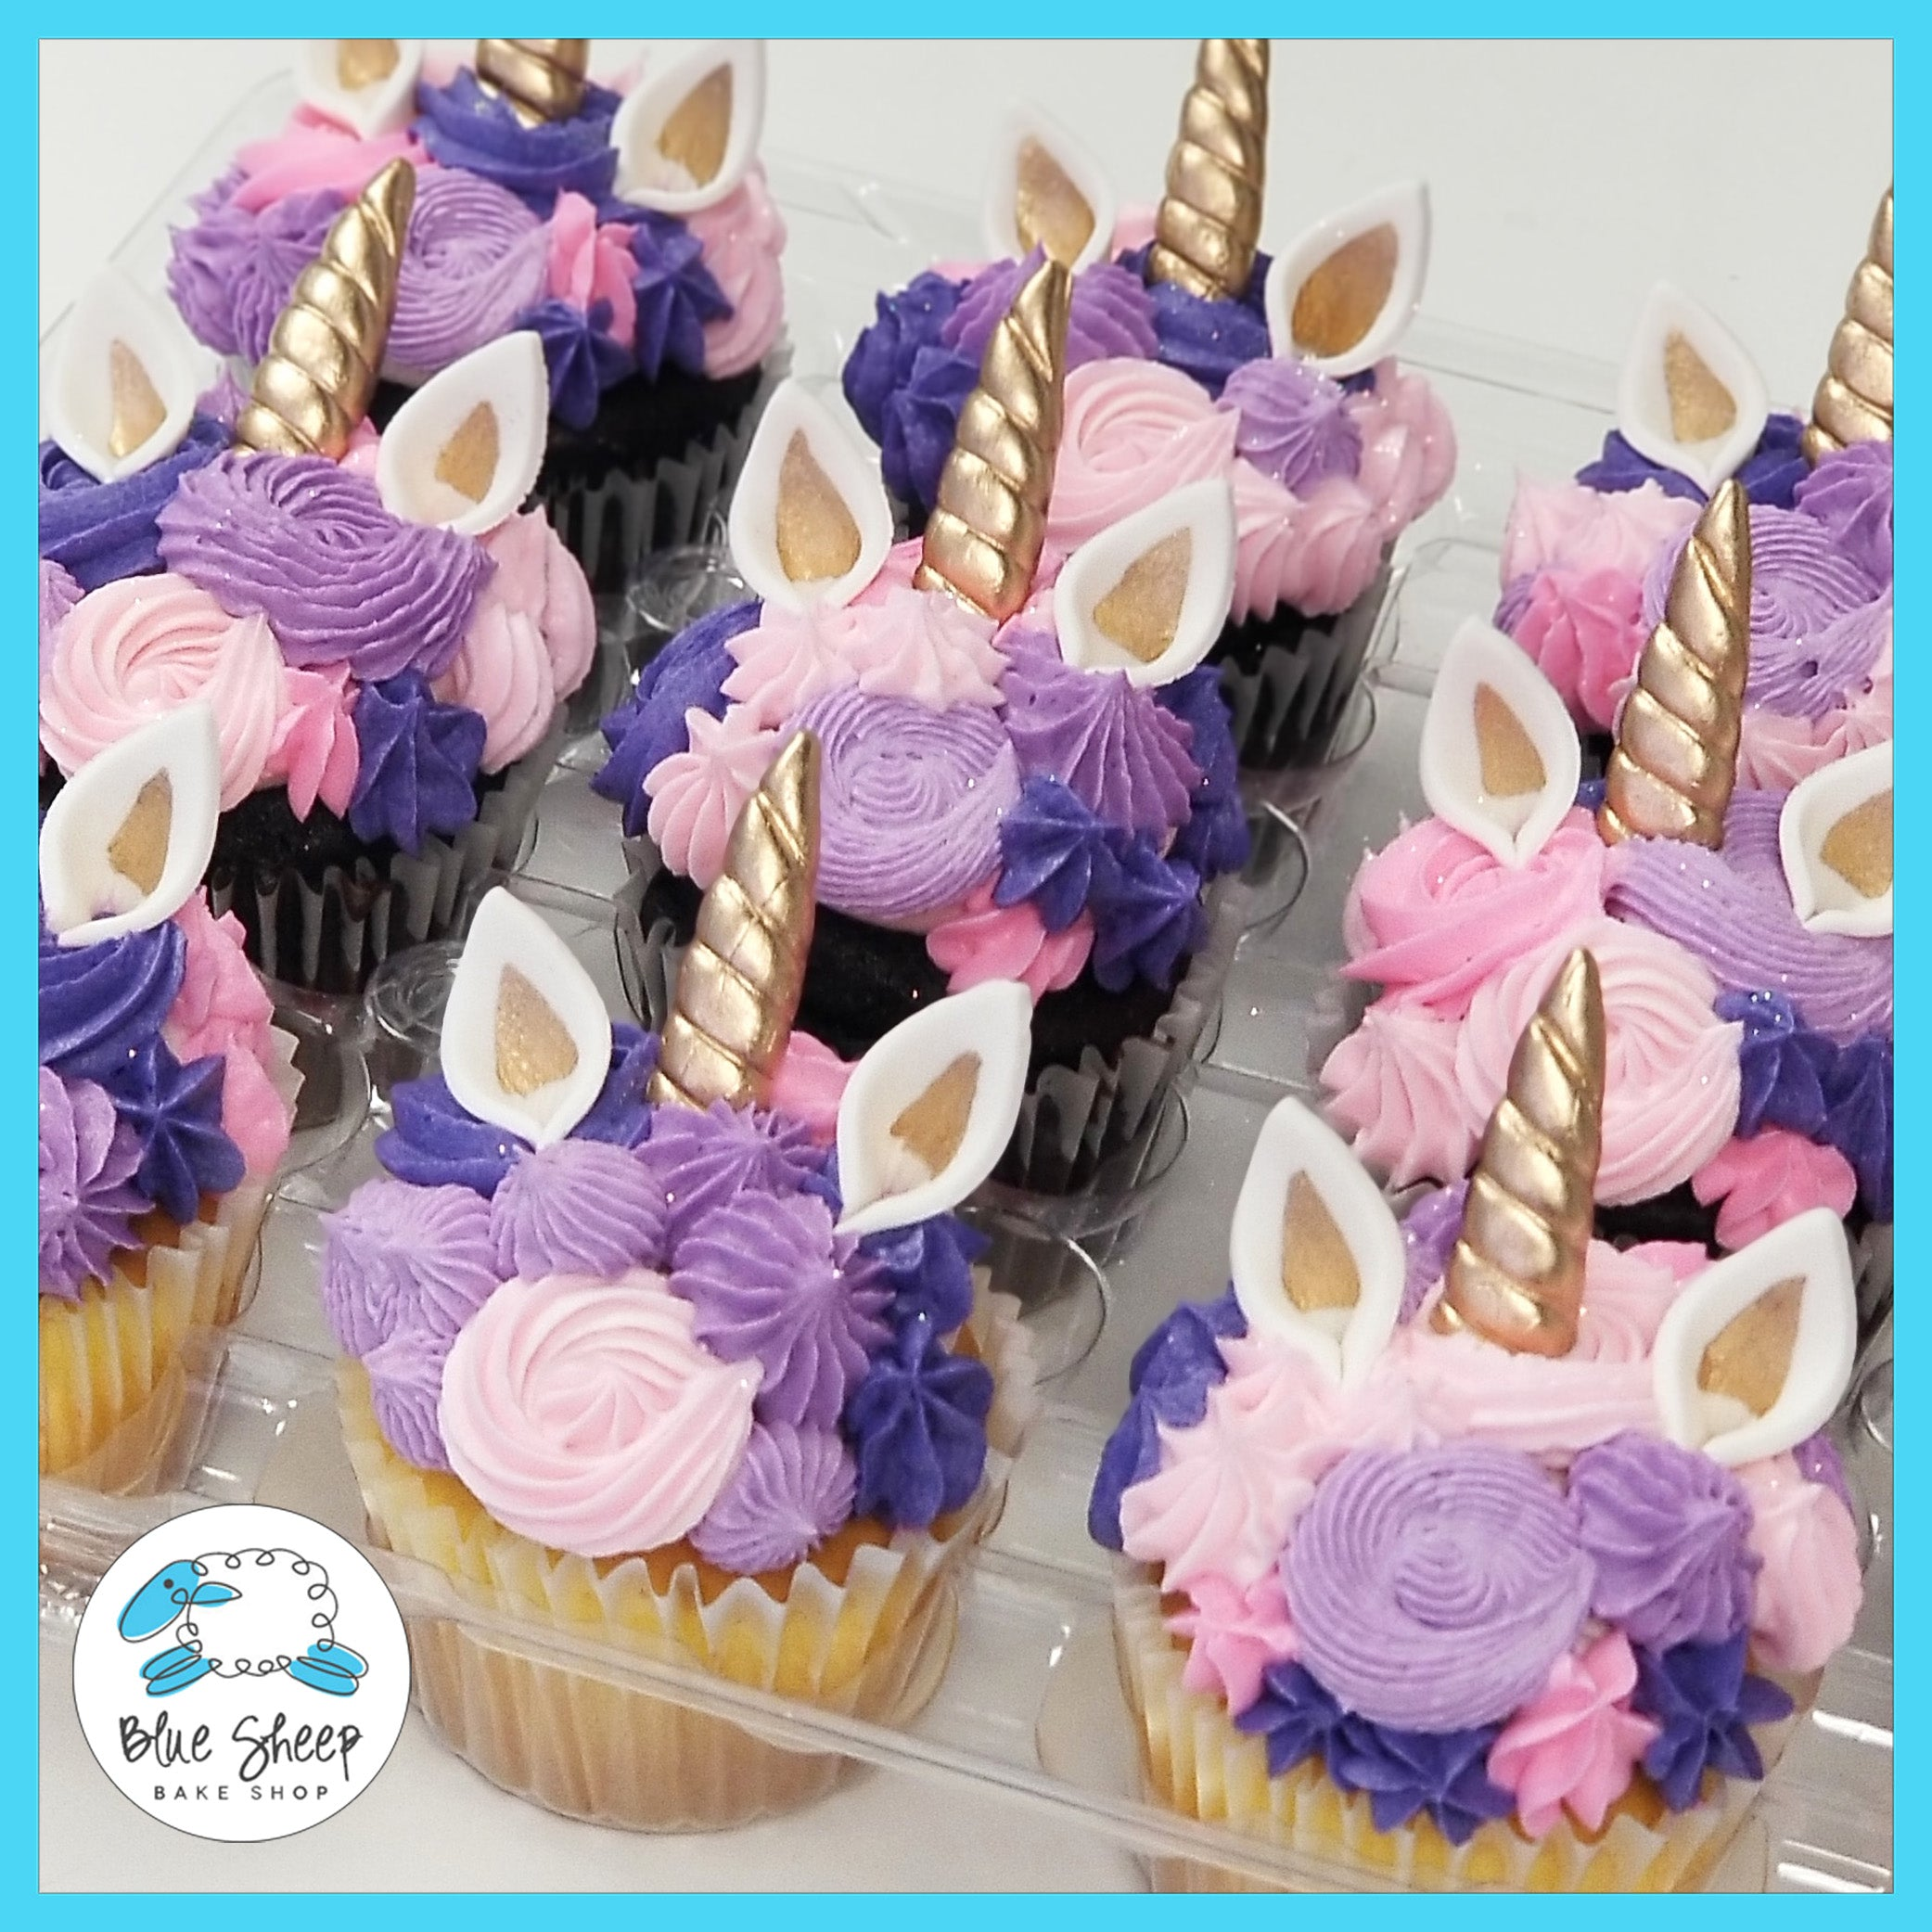 12 Pink Purple Unicorn Cupcakes 2 Days Lead Time Required Blue Sheep Bake Shop